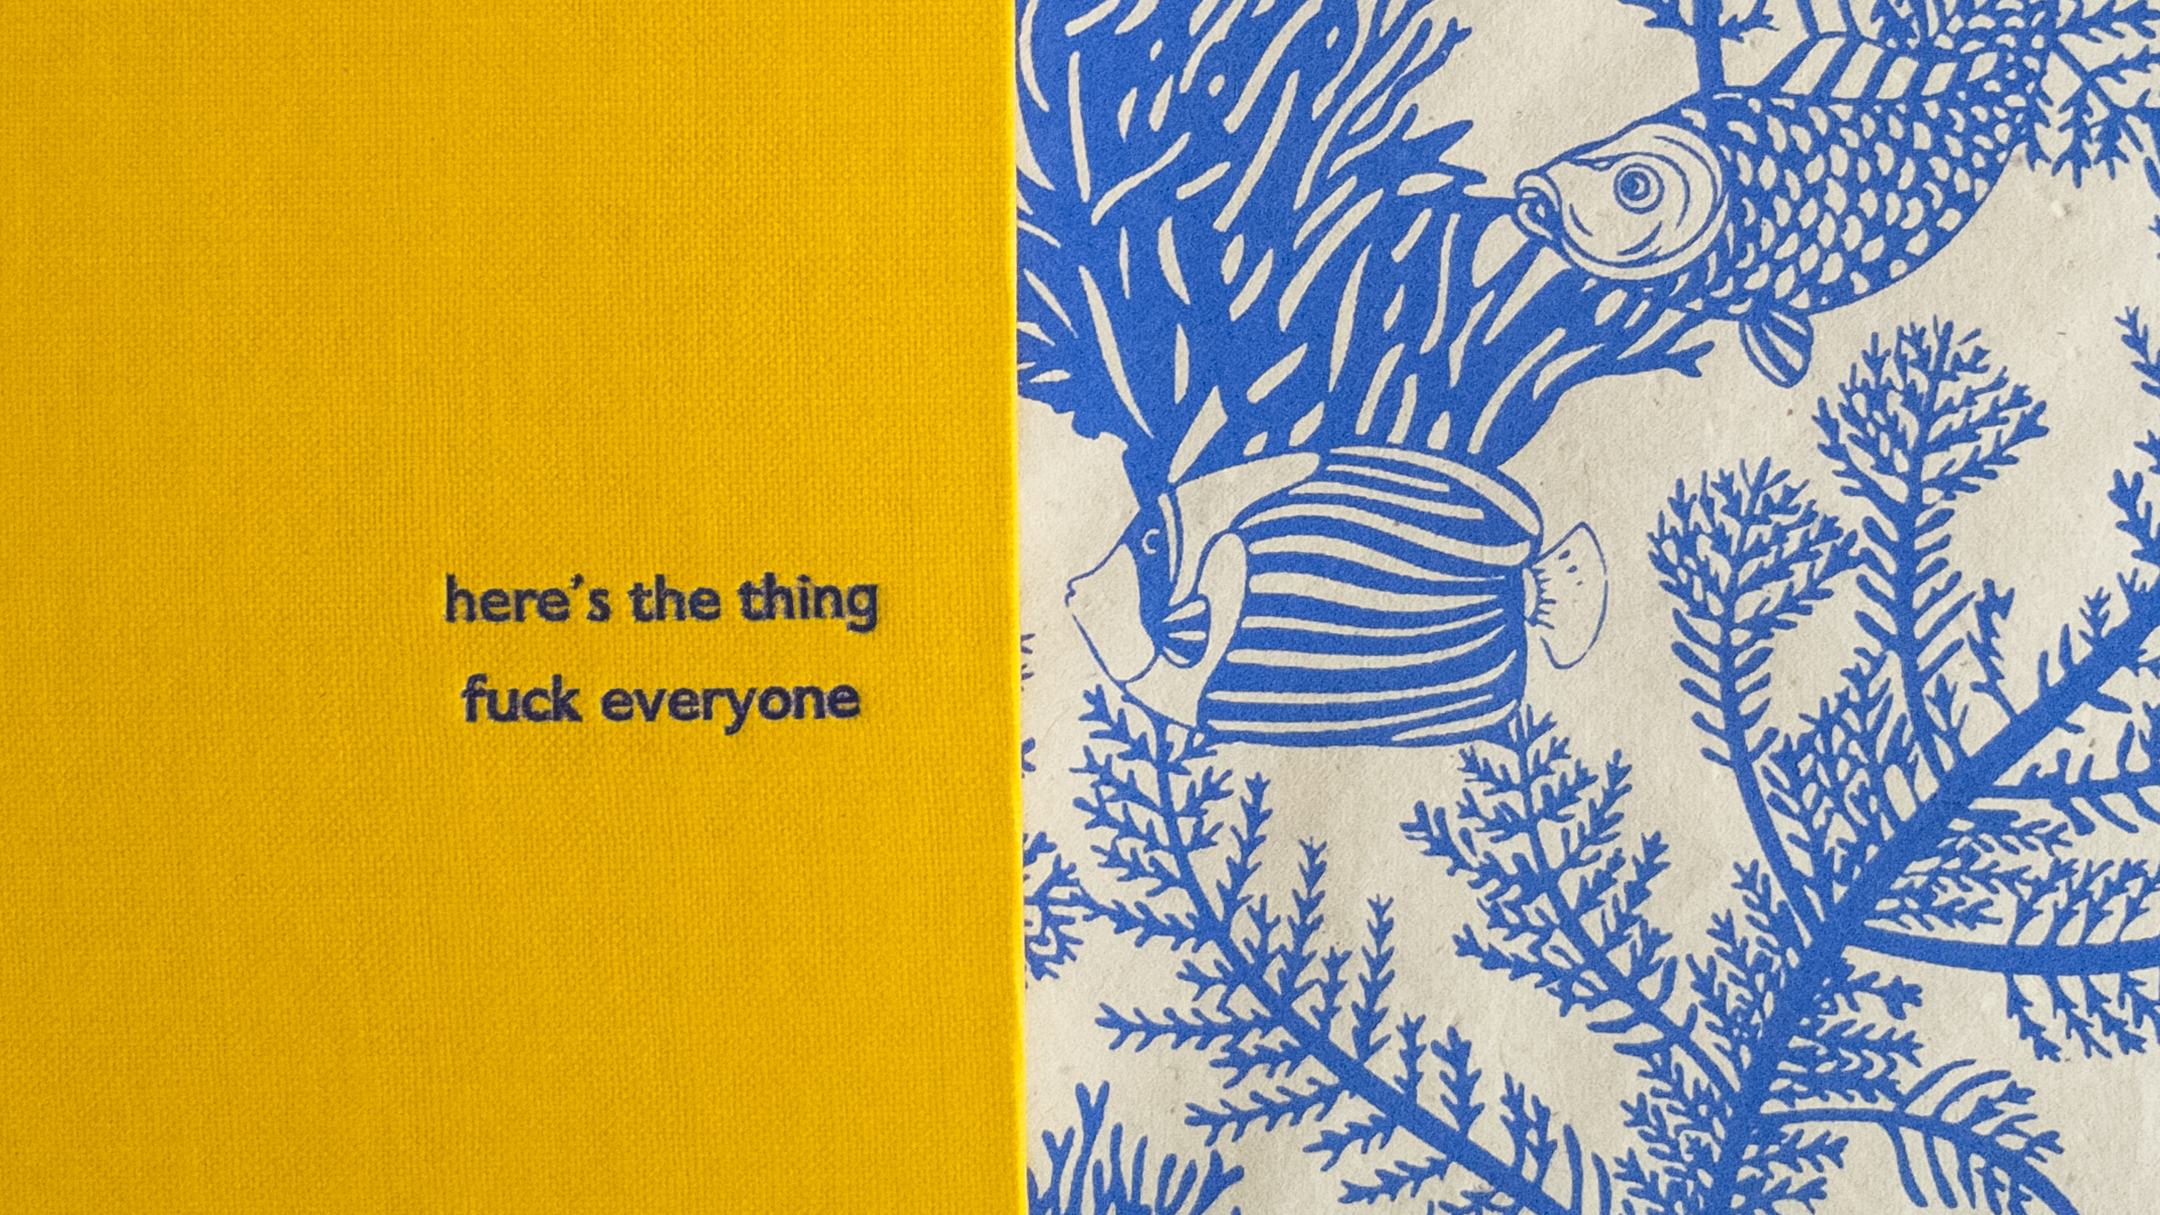 here's the thing, Fuck everyone - The statement is from one of my favourite podcasts, My Favourite murder. It's a podcast about true crime and hosted by two amazing women who talk openly and candidly about their obsession with true crime. I love the yellow cloth, its old library stock and is therefore really hard wearing. It's so bright and cheerful I really like the juxtaposition with the harsher sentiment of the statement. The fish endpapers then just finish off the whimsy of the notebook.